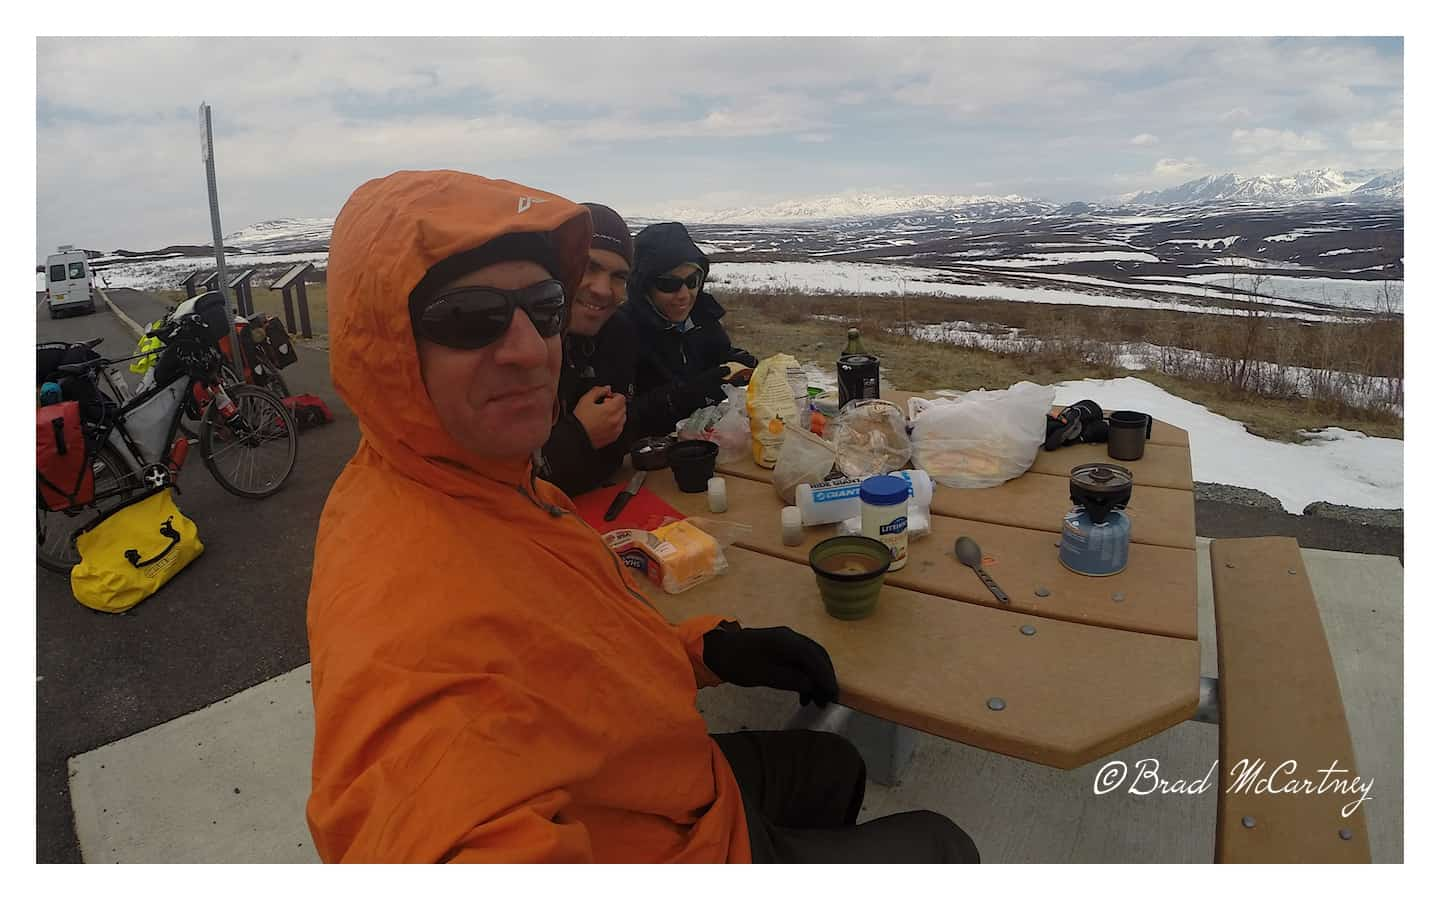 Lunch break on the Denali Hwy